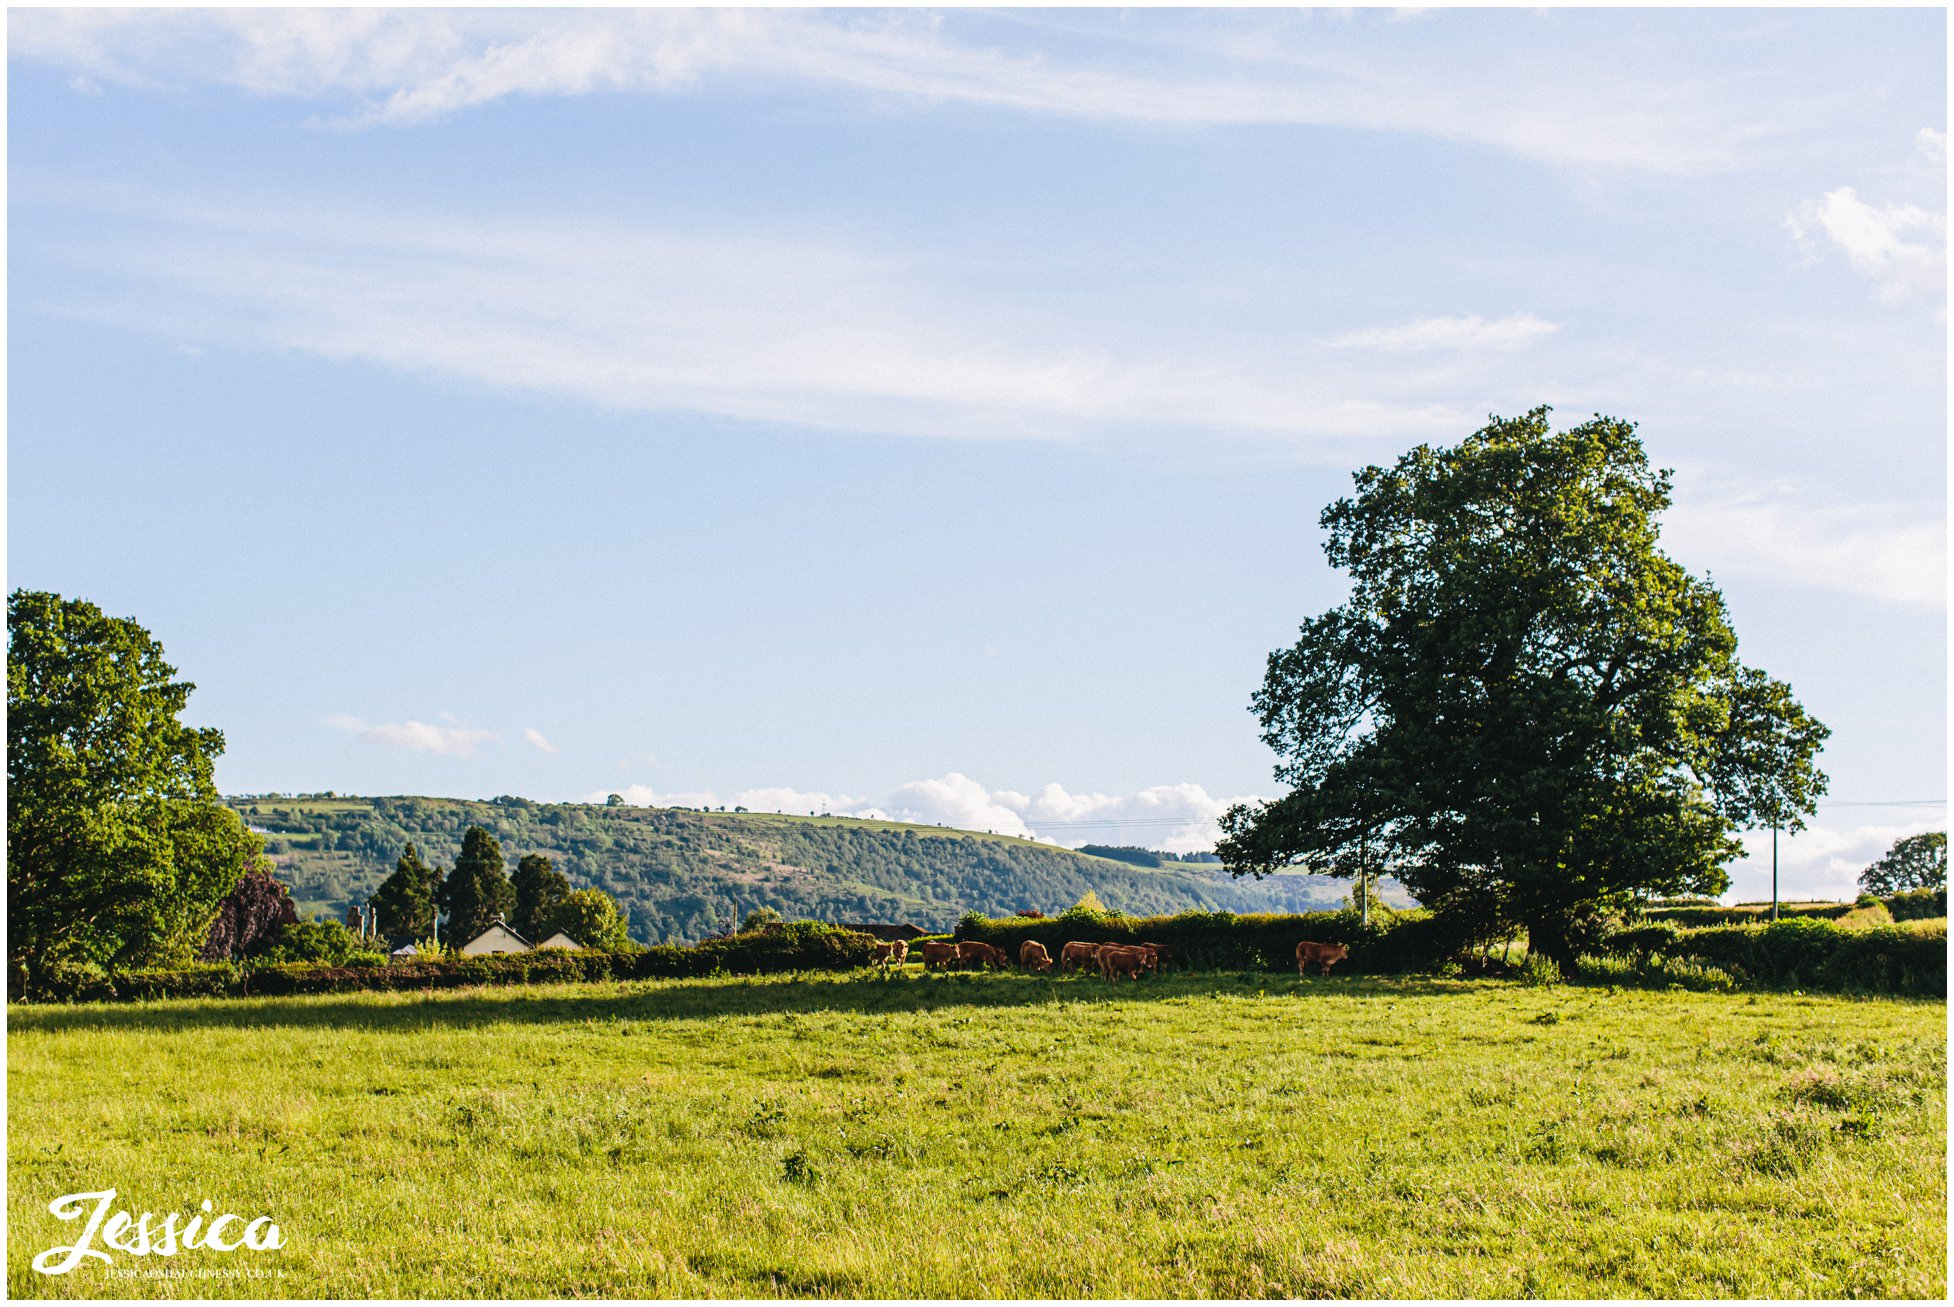 welsh country views surround the wedding venue